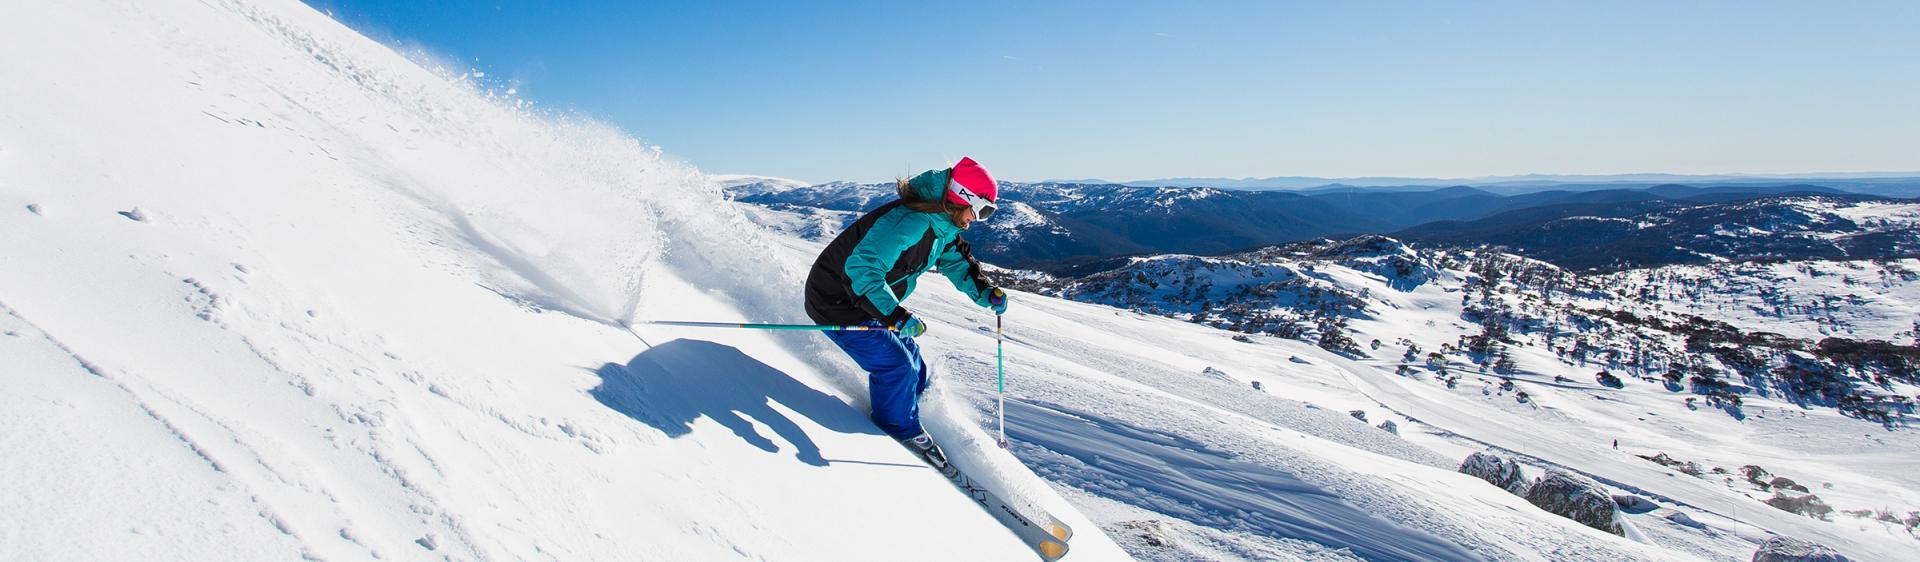 Skifahren in Perisher, Snowy Mountains